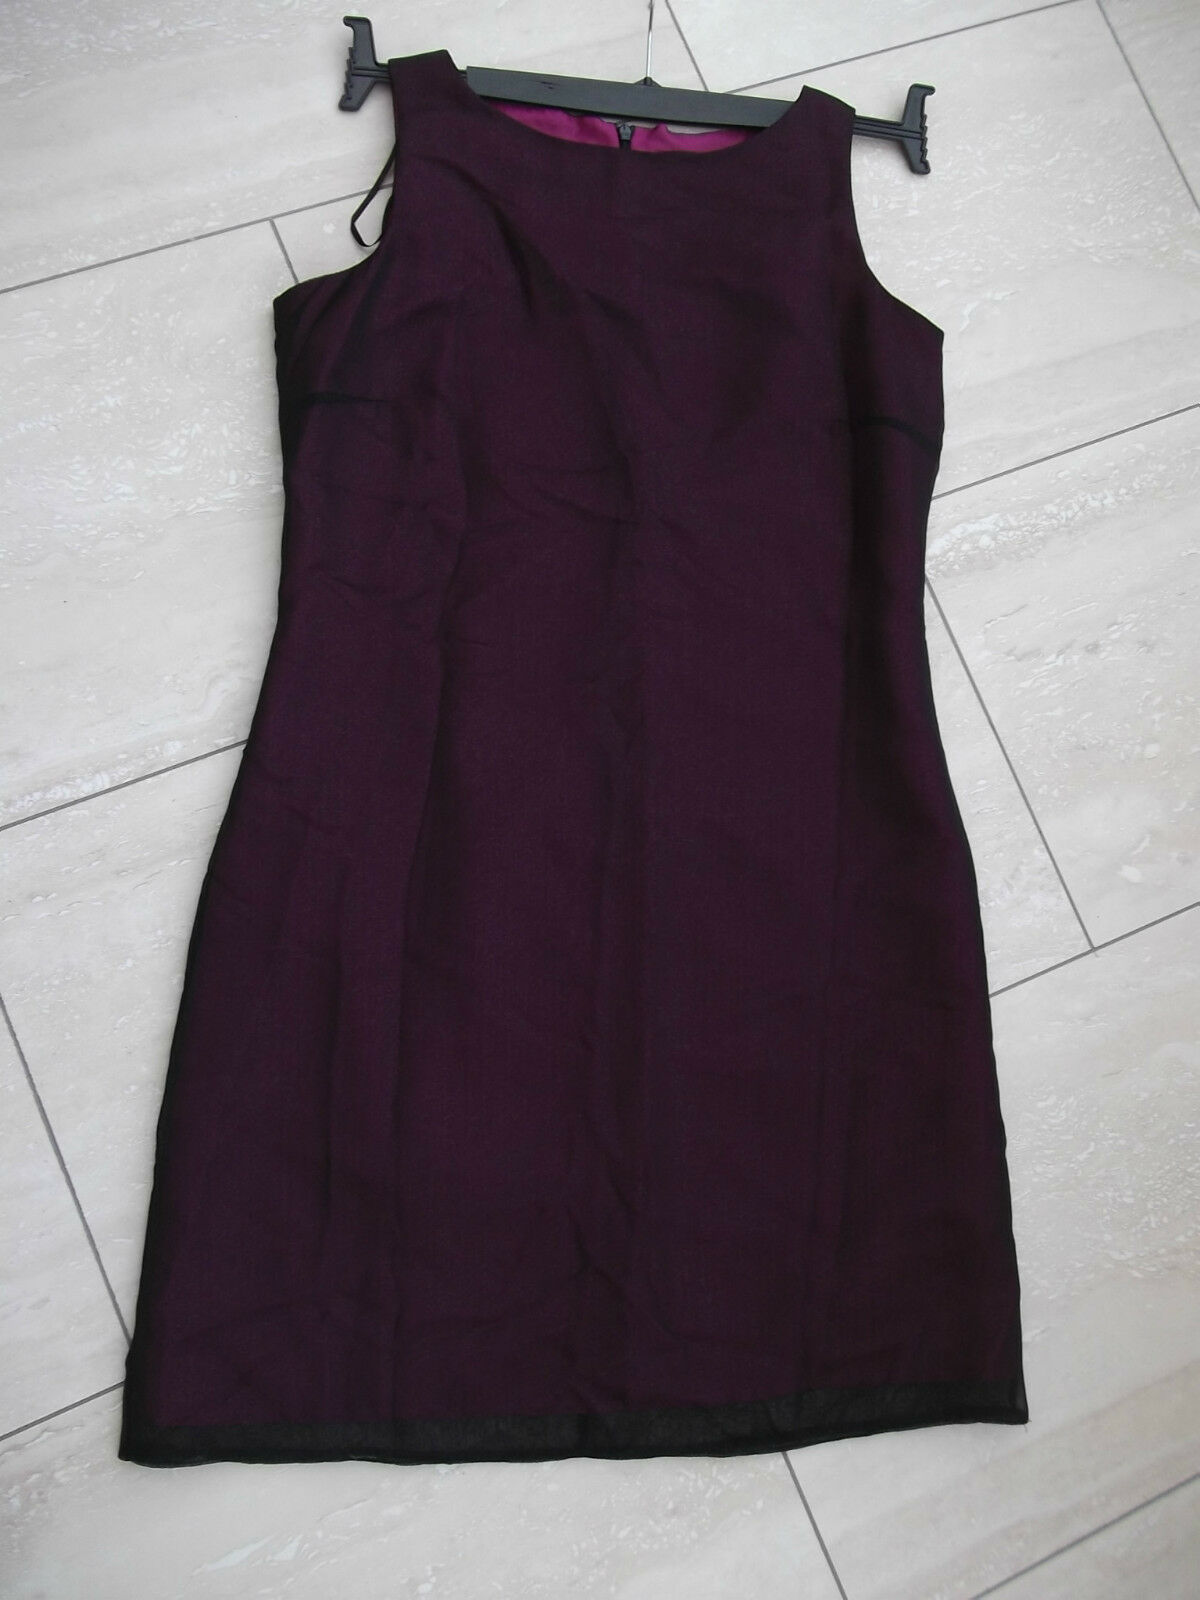 Wine coloured dress by Berkertex. Size 12